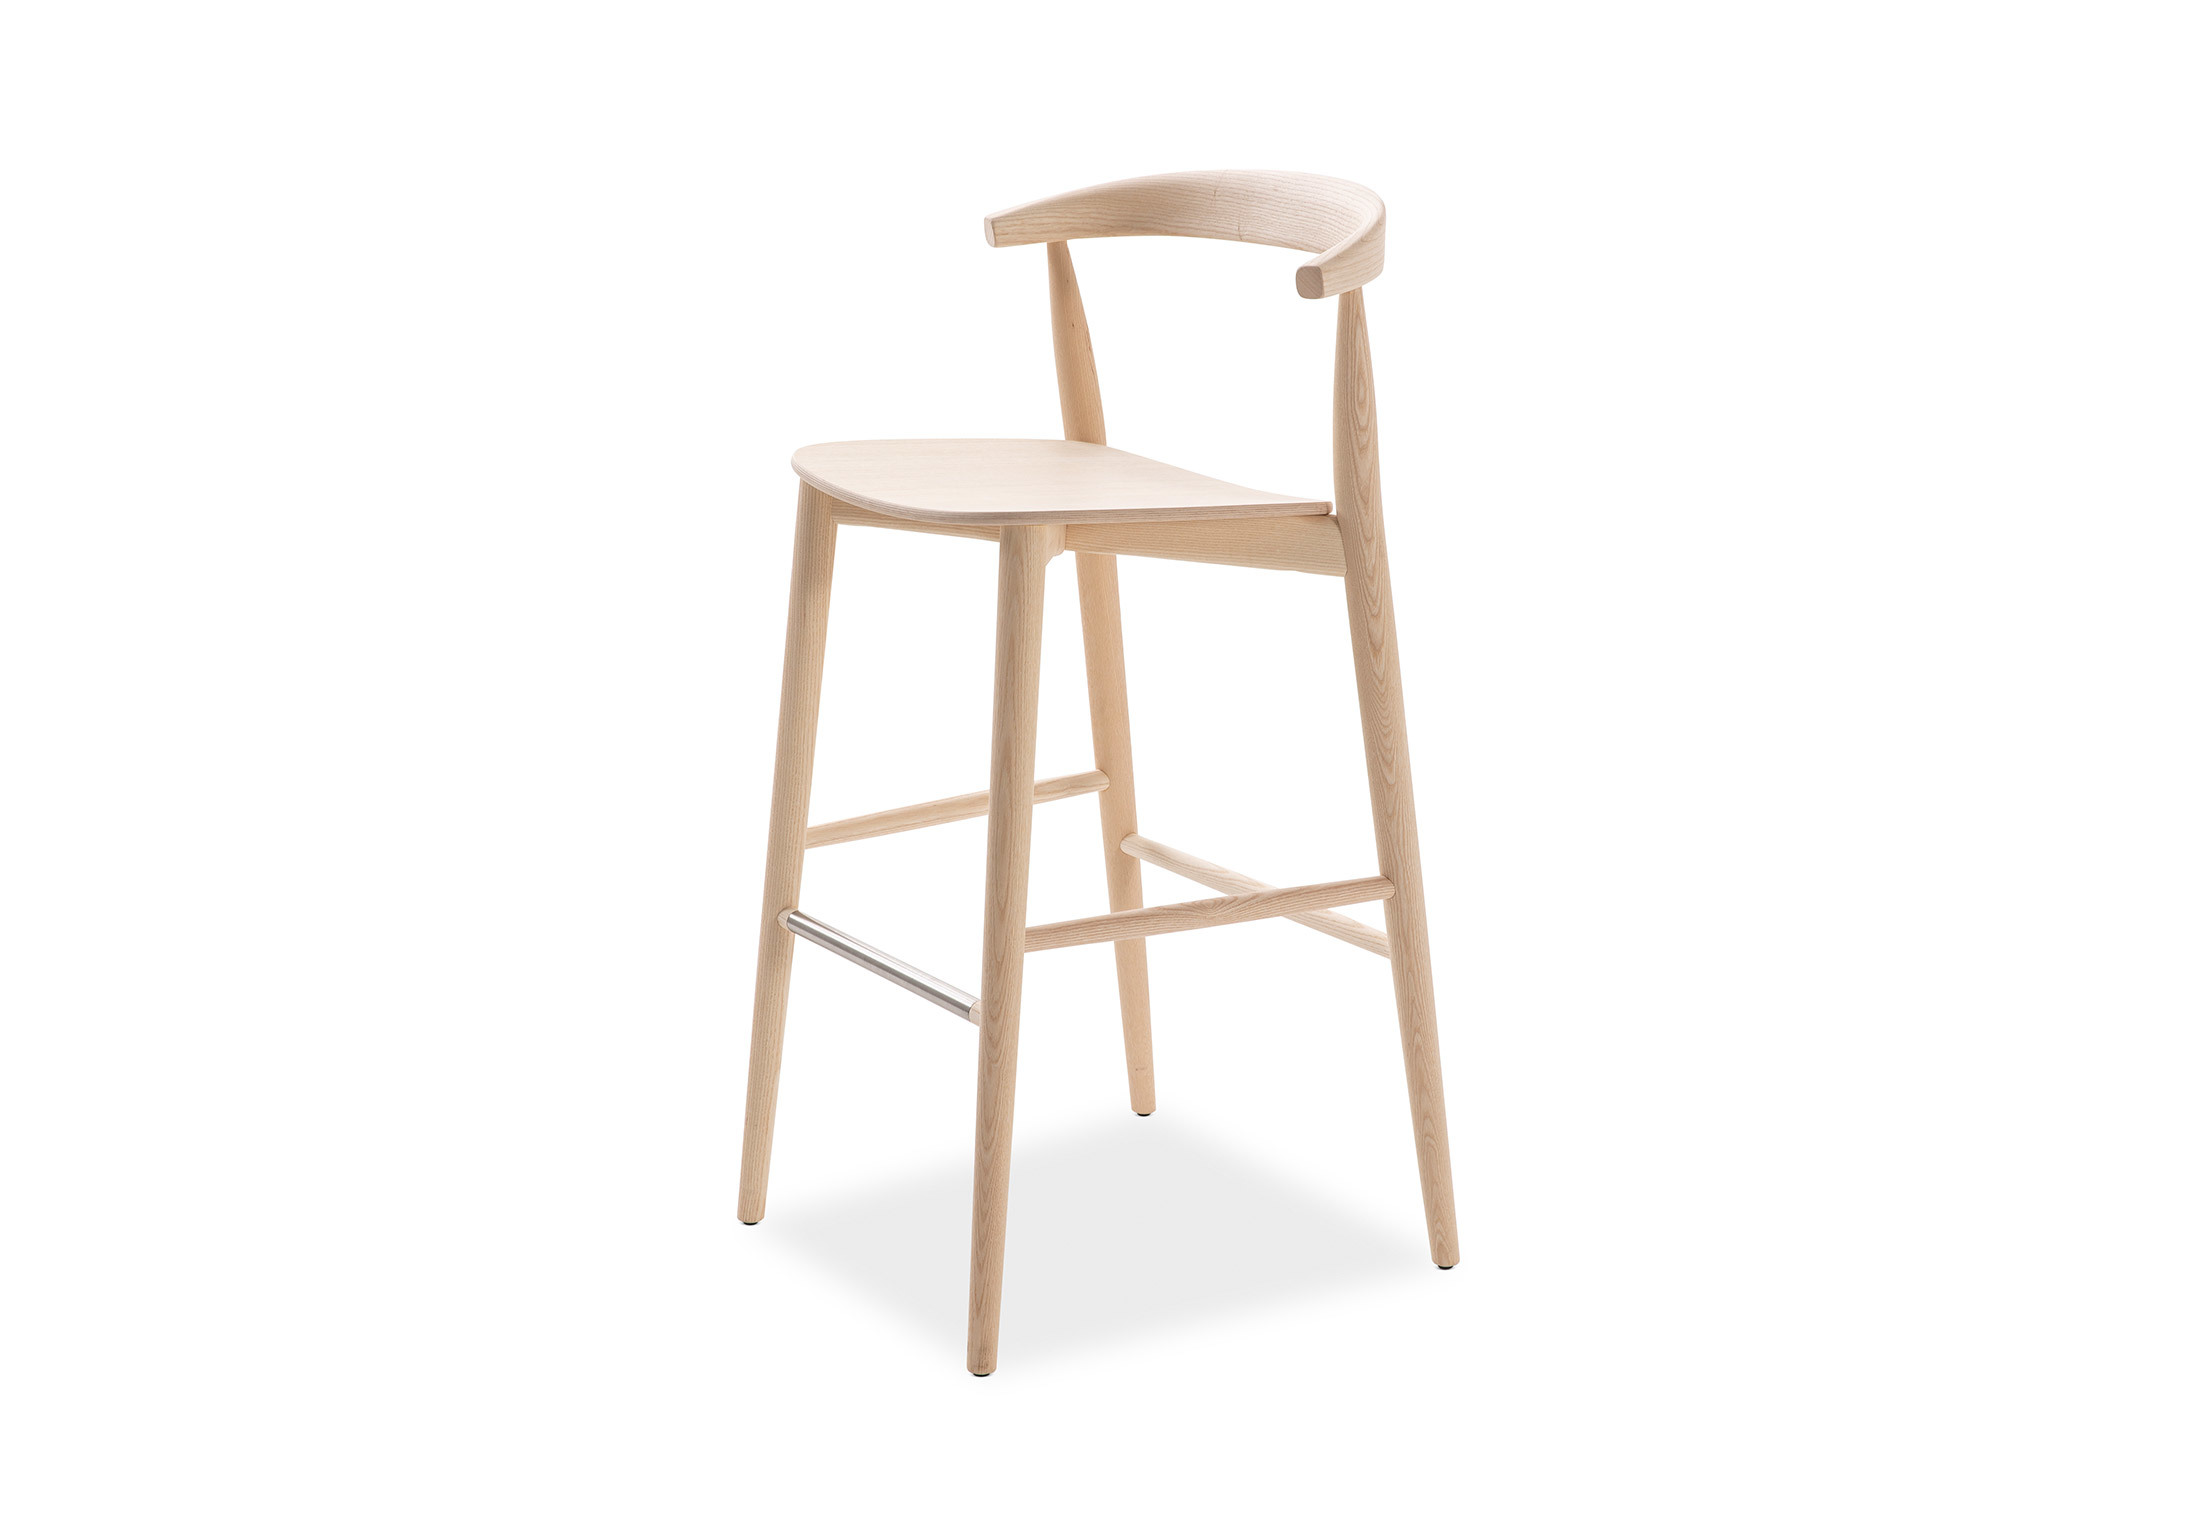 Astounding Newood Light Stool By Cappellini Stylepark Squirreltailoven Fun Painted Chair Ideas Images Squirreltailovenorg